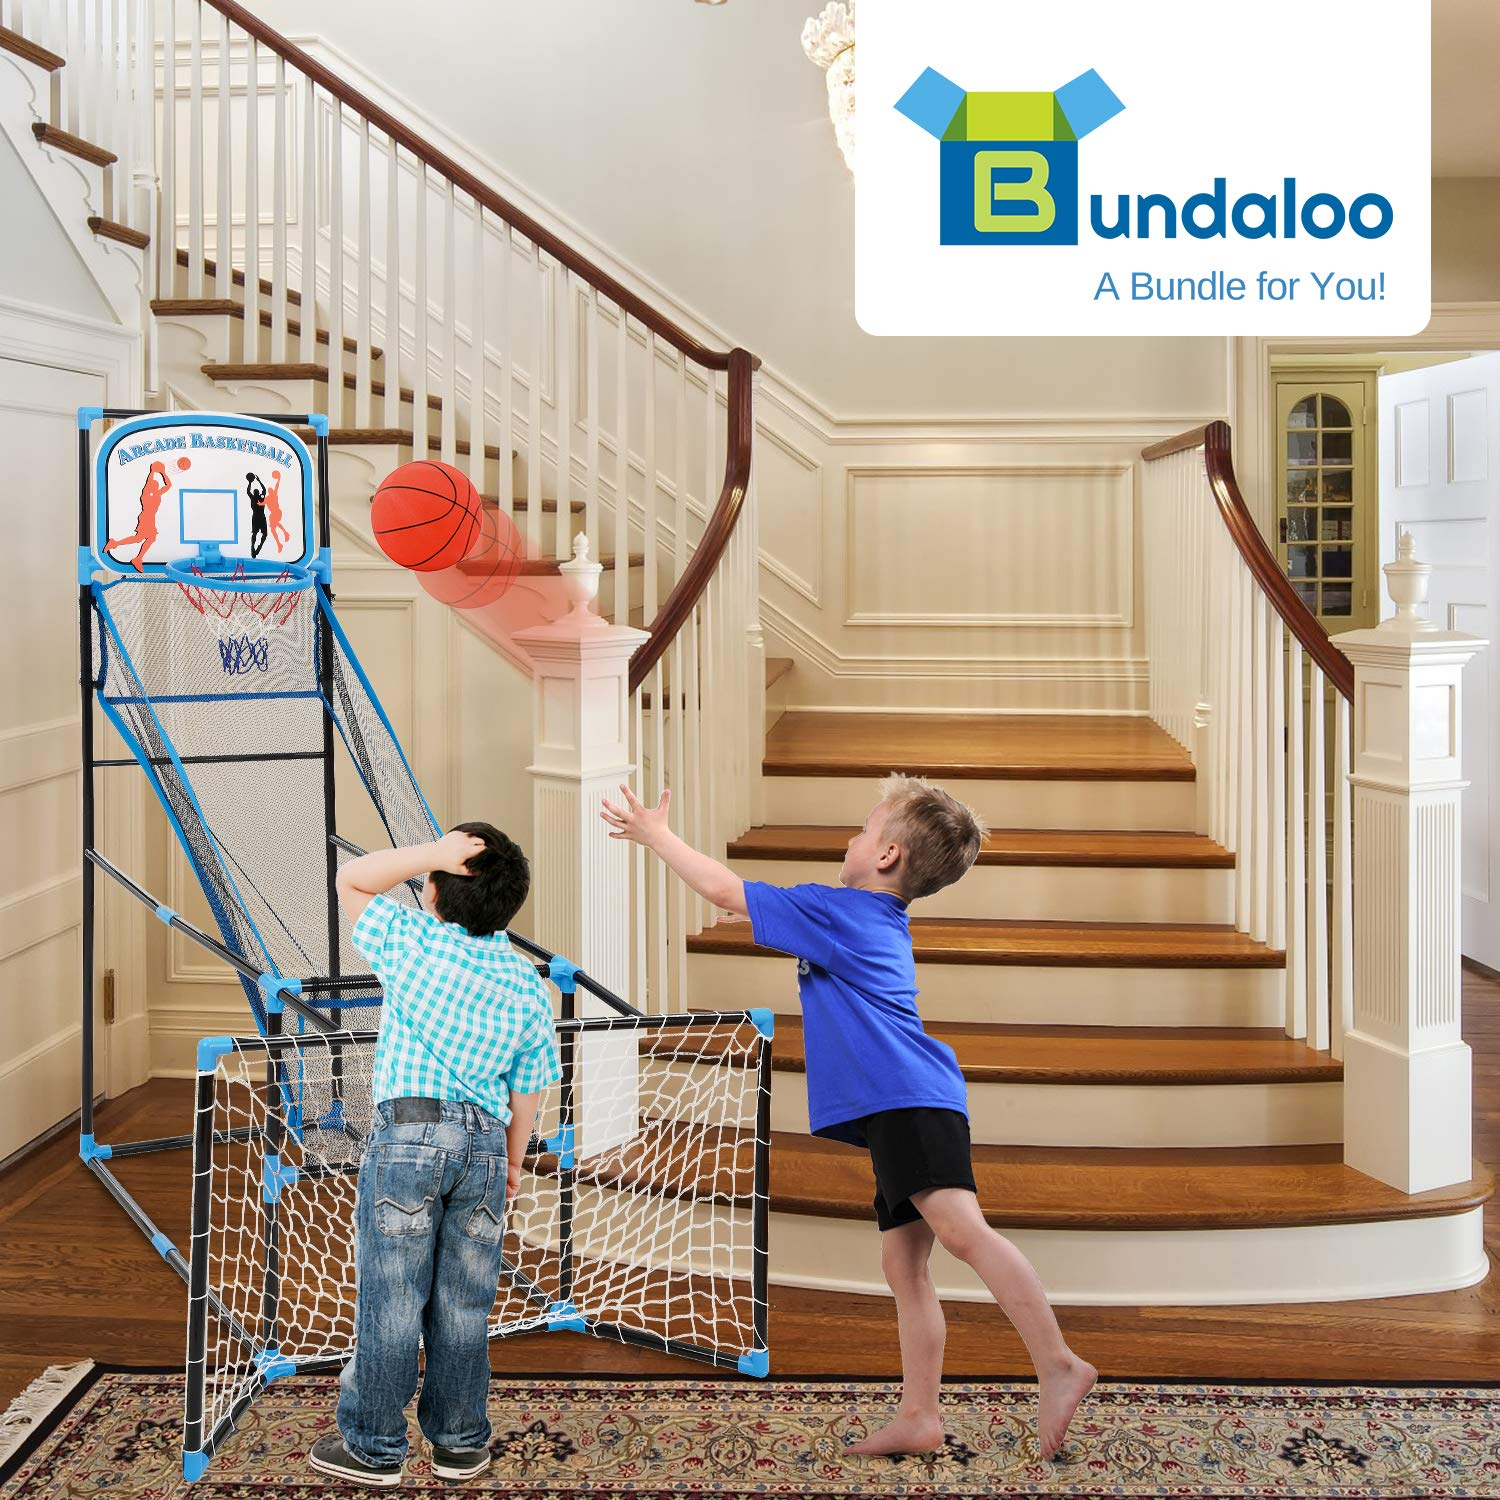 Bundaloo 3 in 1 Arcade Game | Basketball, Soccer, and Hockey Kids Toys | Fun Outdoor and Indoor Ball Games for Boys, Girls, Toddler | Includes 3 Balls, Backboard Hoop, Net Goal, Stick, and Air Pump by Bundaloo (Image #5)